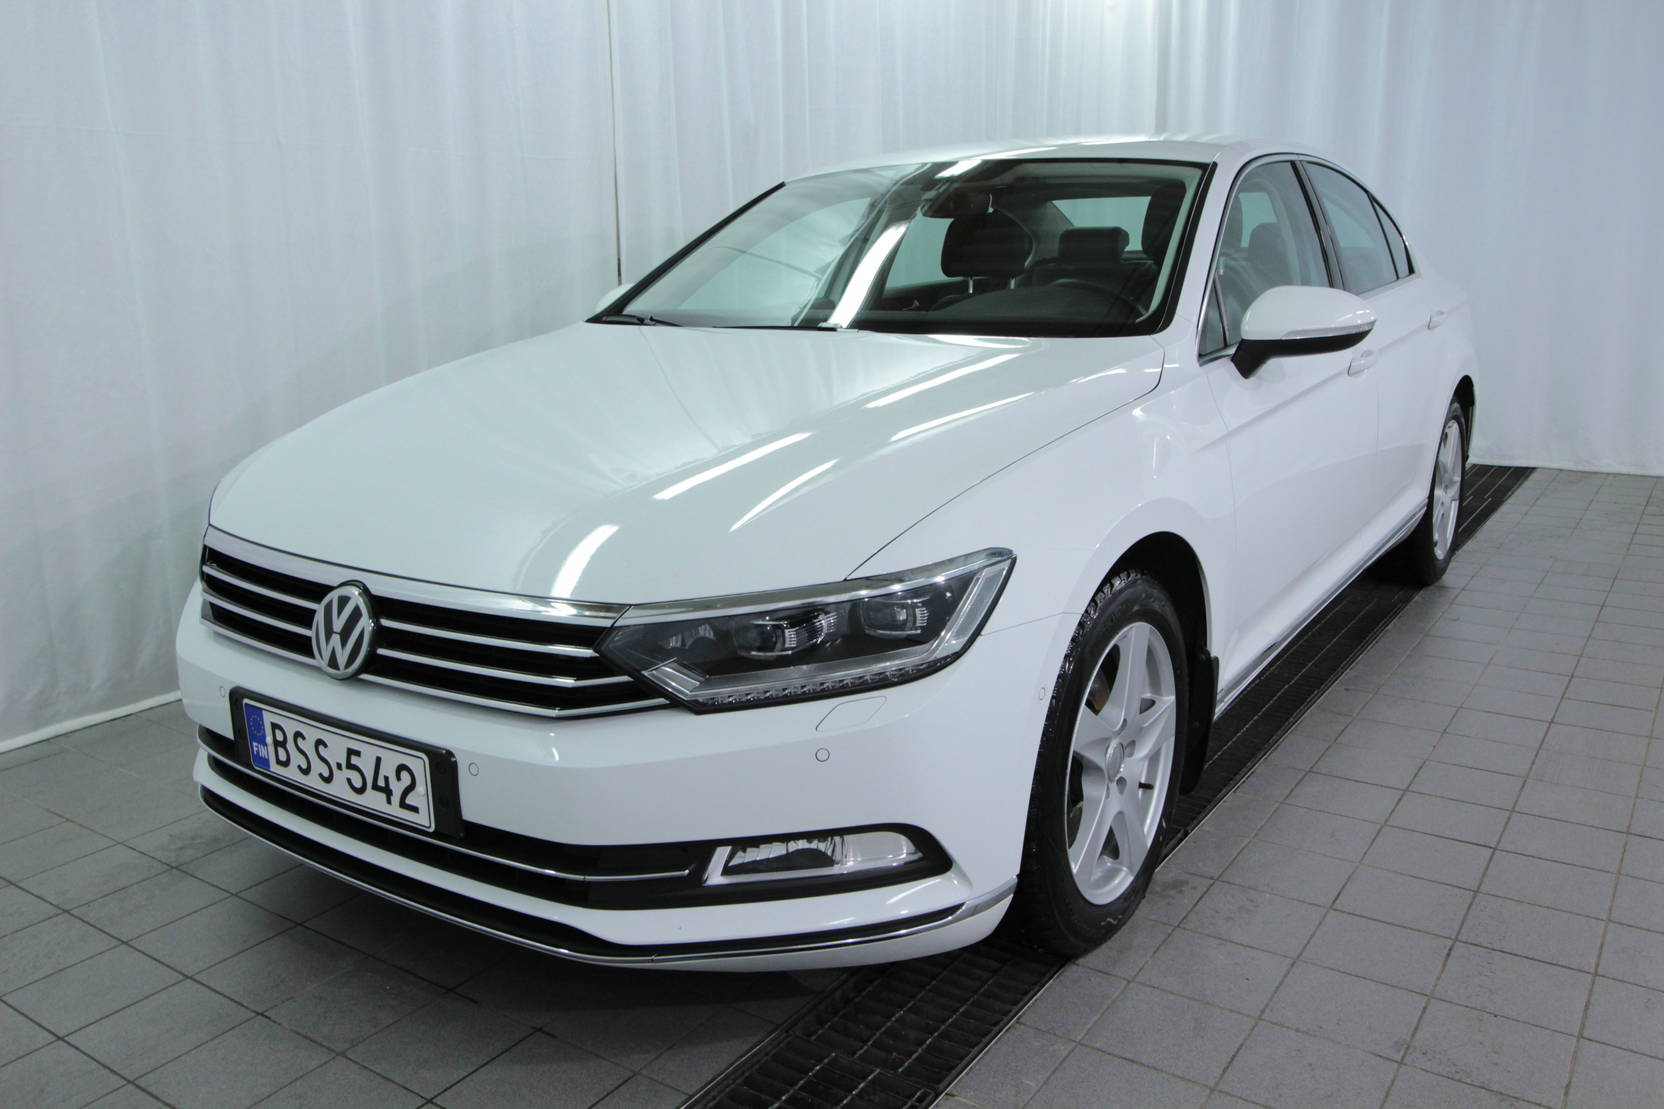 Volkswagen Passat Sedan Highline 1,6 Tdi 88 Kw Dsg detail1